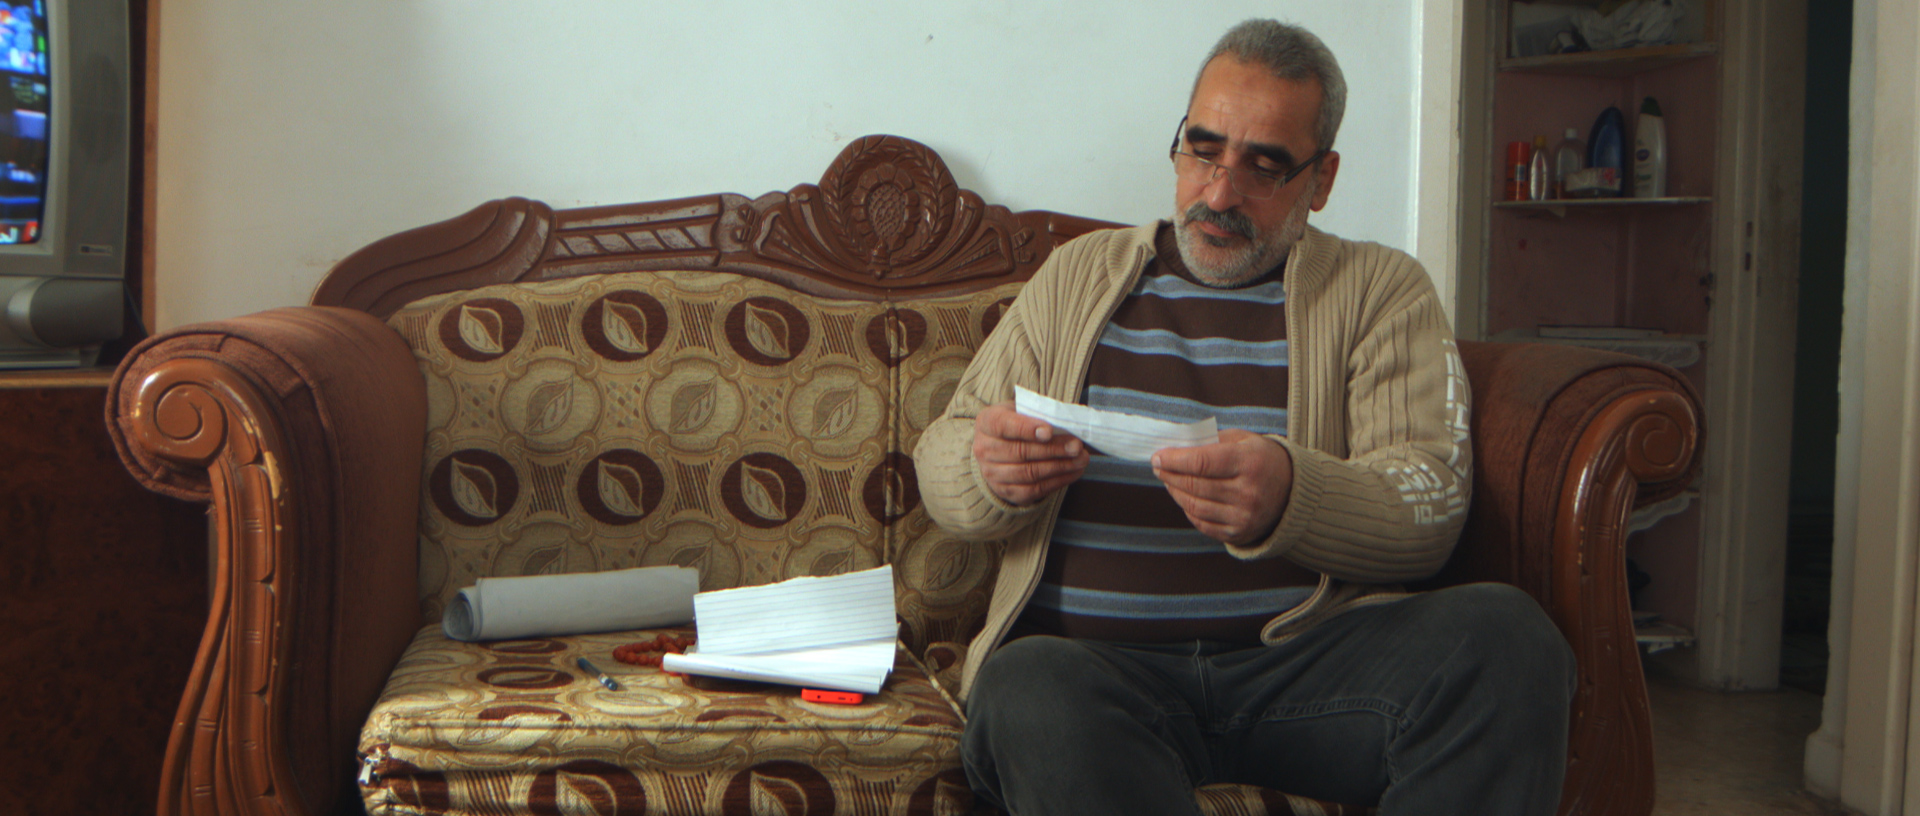 """I was living in Damascus when my house was bombed. We lost our property along with all of our furniture. My mother's and my siblings' houses were destroyed too. What I experienced in Syria has greatly affected my health, and not too long after I arrived in Jordan, I suffered a heart attack."" - Muwaffaq Mreish, 51-year old Syrian patient. On 15 December 2014, MSF launched its non-communicable diseases (NCDs) project in two clinics located in Irbid governorate, near the closed borders with Syria. Both clinics continue to provide free-of-charge quality medical treatment to Syrian refugees and vulnerable Jordanians suffering from chronic diseases, in addition to psychosocial support sessions which were introduced in April 2016."